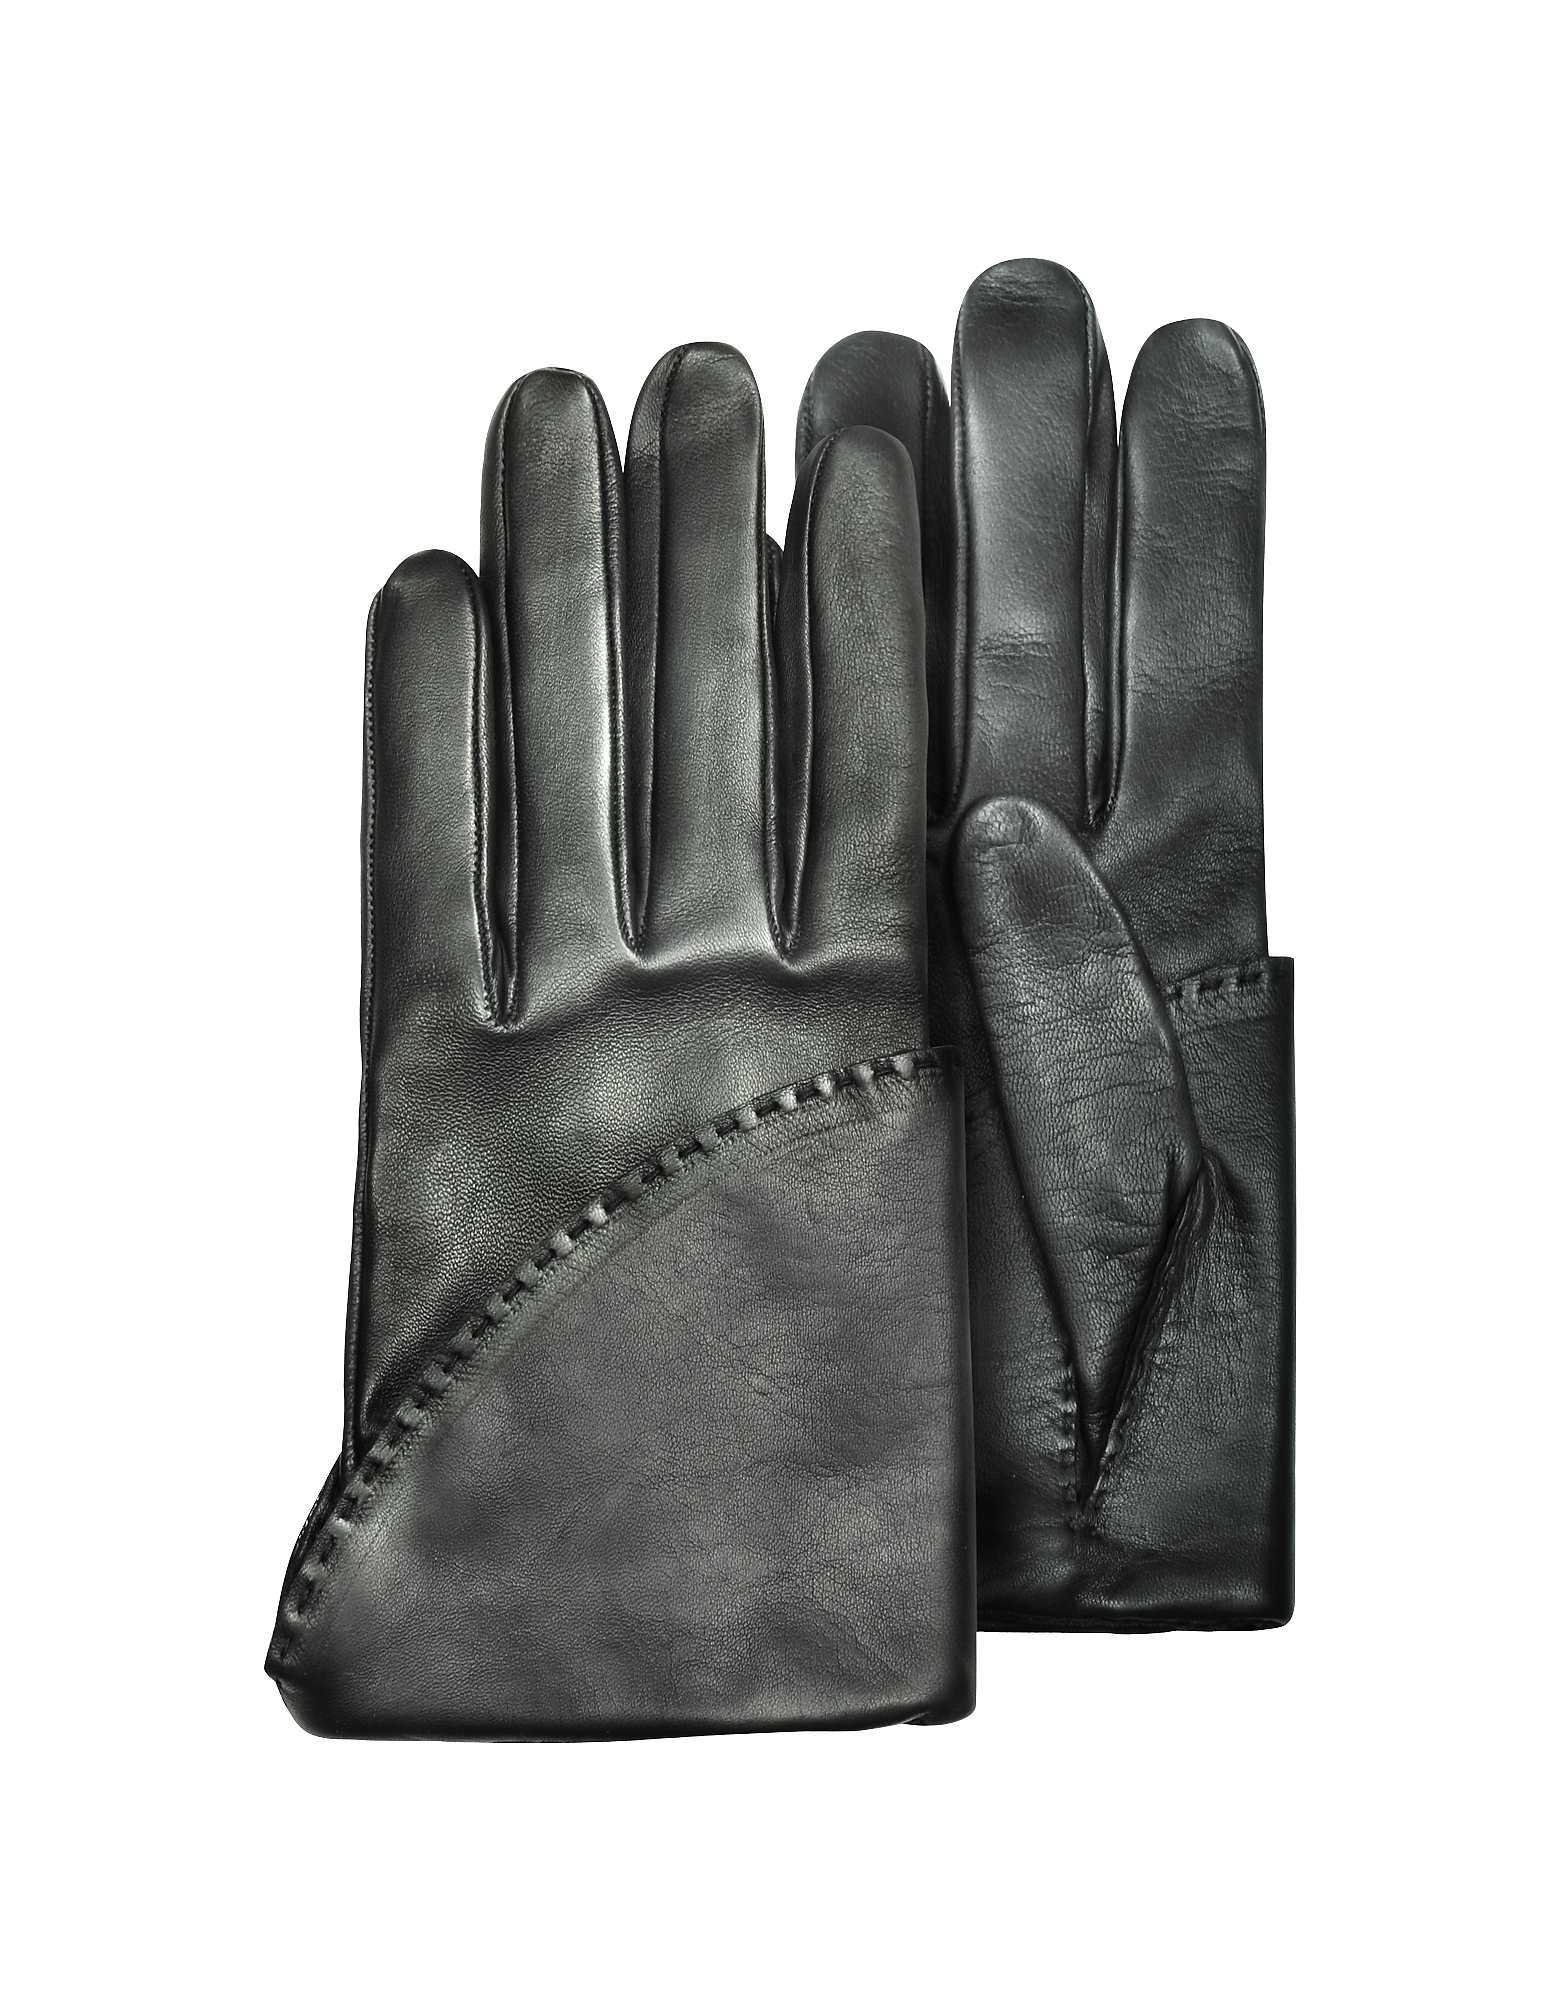 Pineider Designer Women's Gloves, Women's Black Short Nappa Gloves w/ Silk Lining